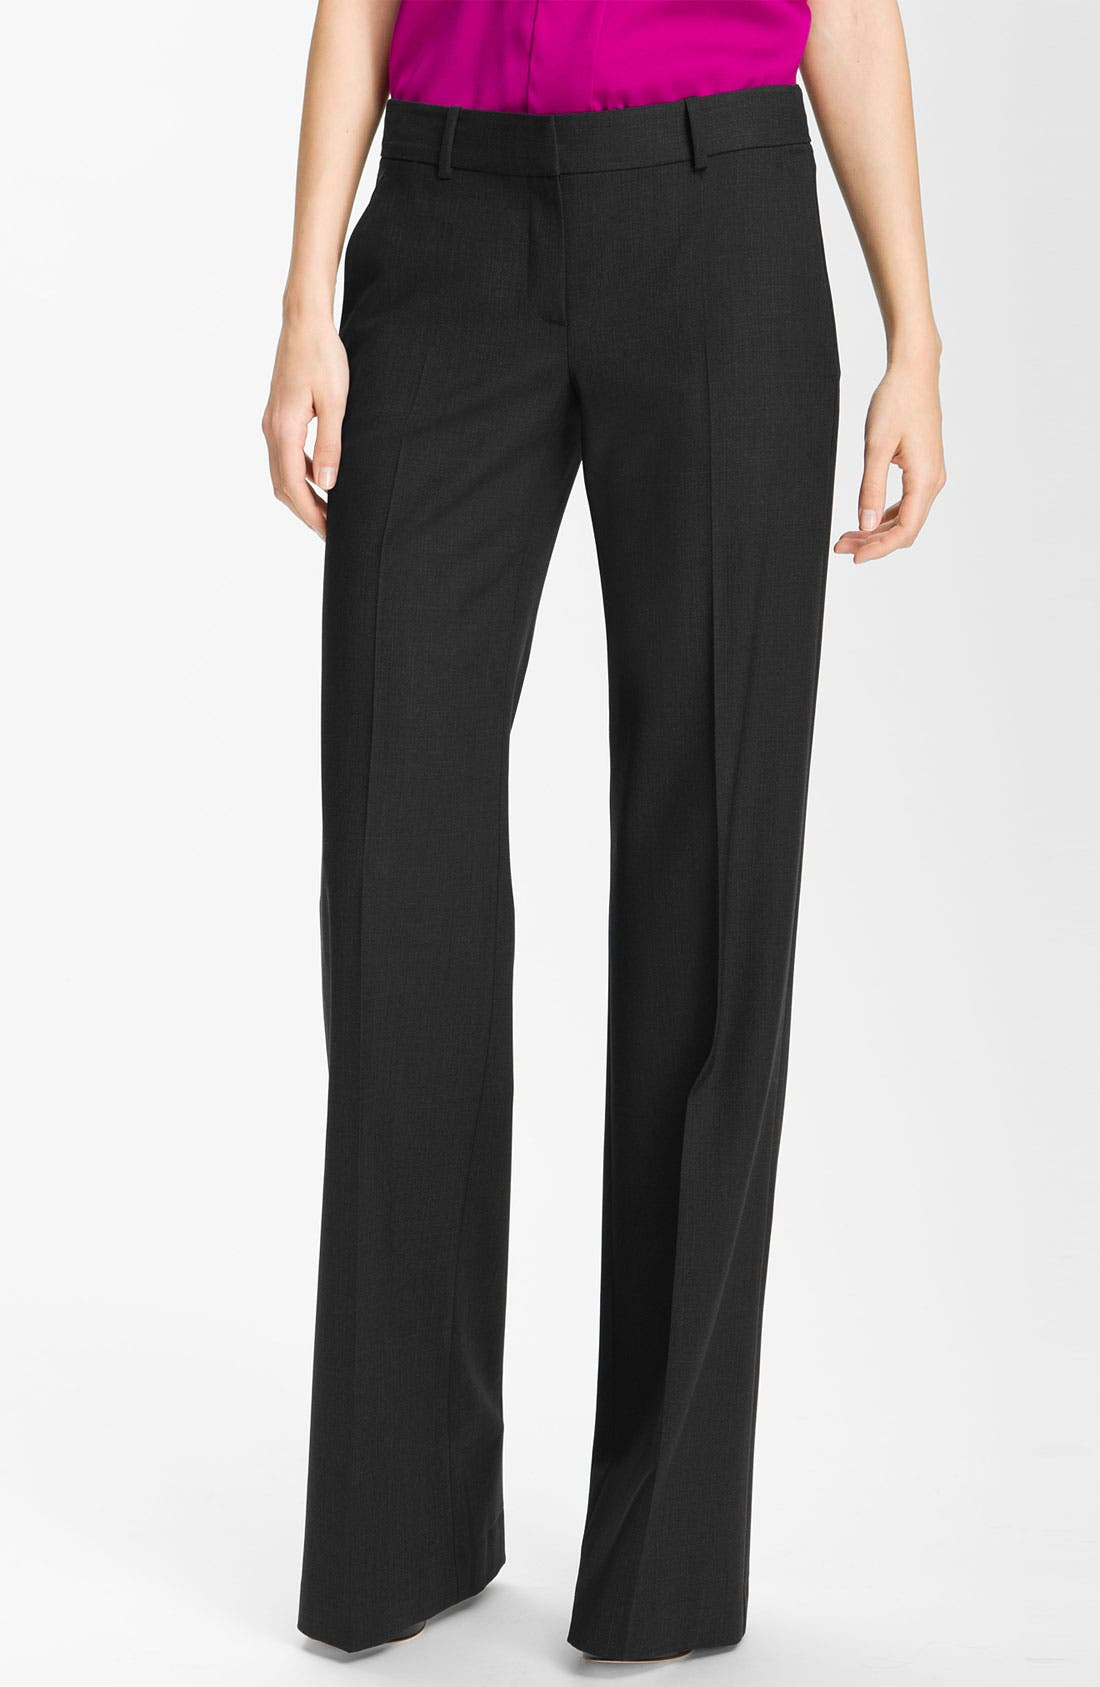 Alternate Image 1 Selected - Theory 'Emery - Tailor' Trousers